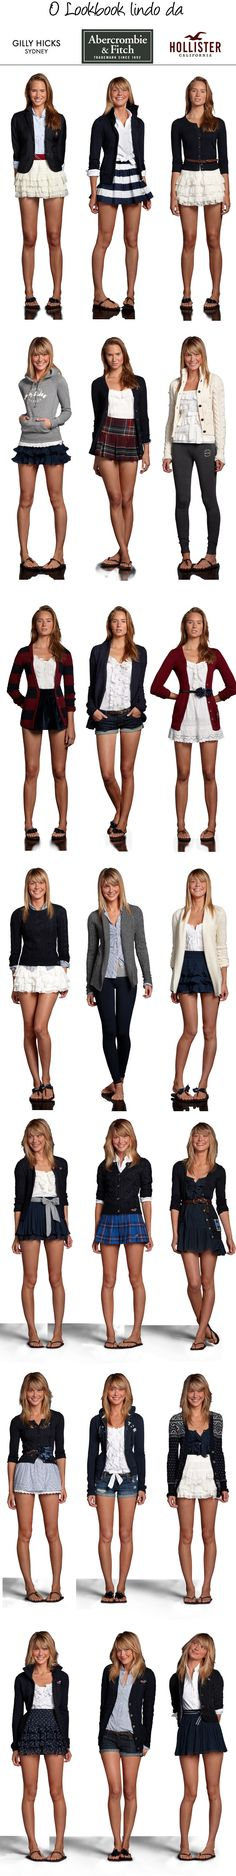 Abercrombie & Fitch <3 ~ Hollister <3....i love it!!! Street style for the teen set......!